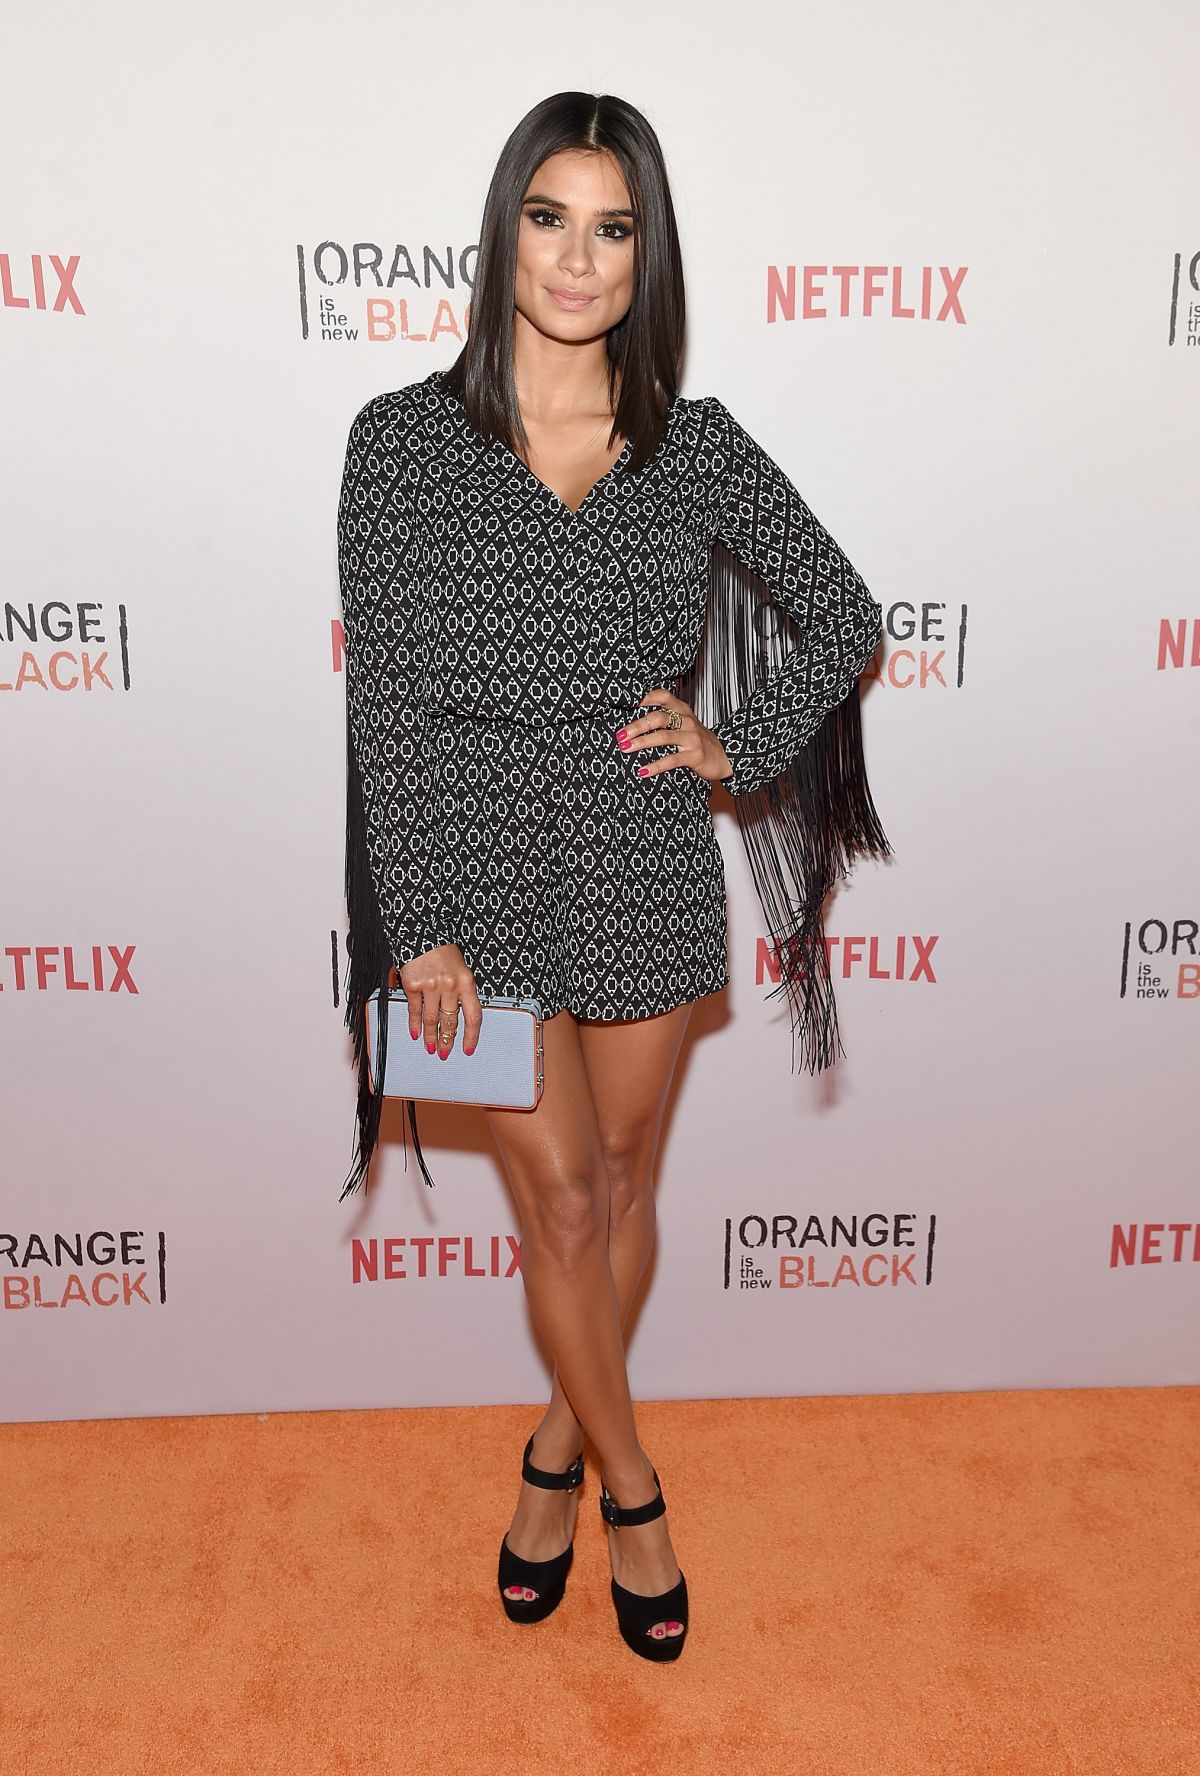 DIANE GUERRERO at Orangecon Fan Event in New York